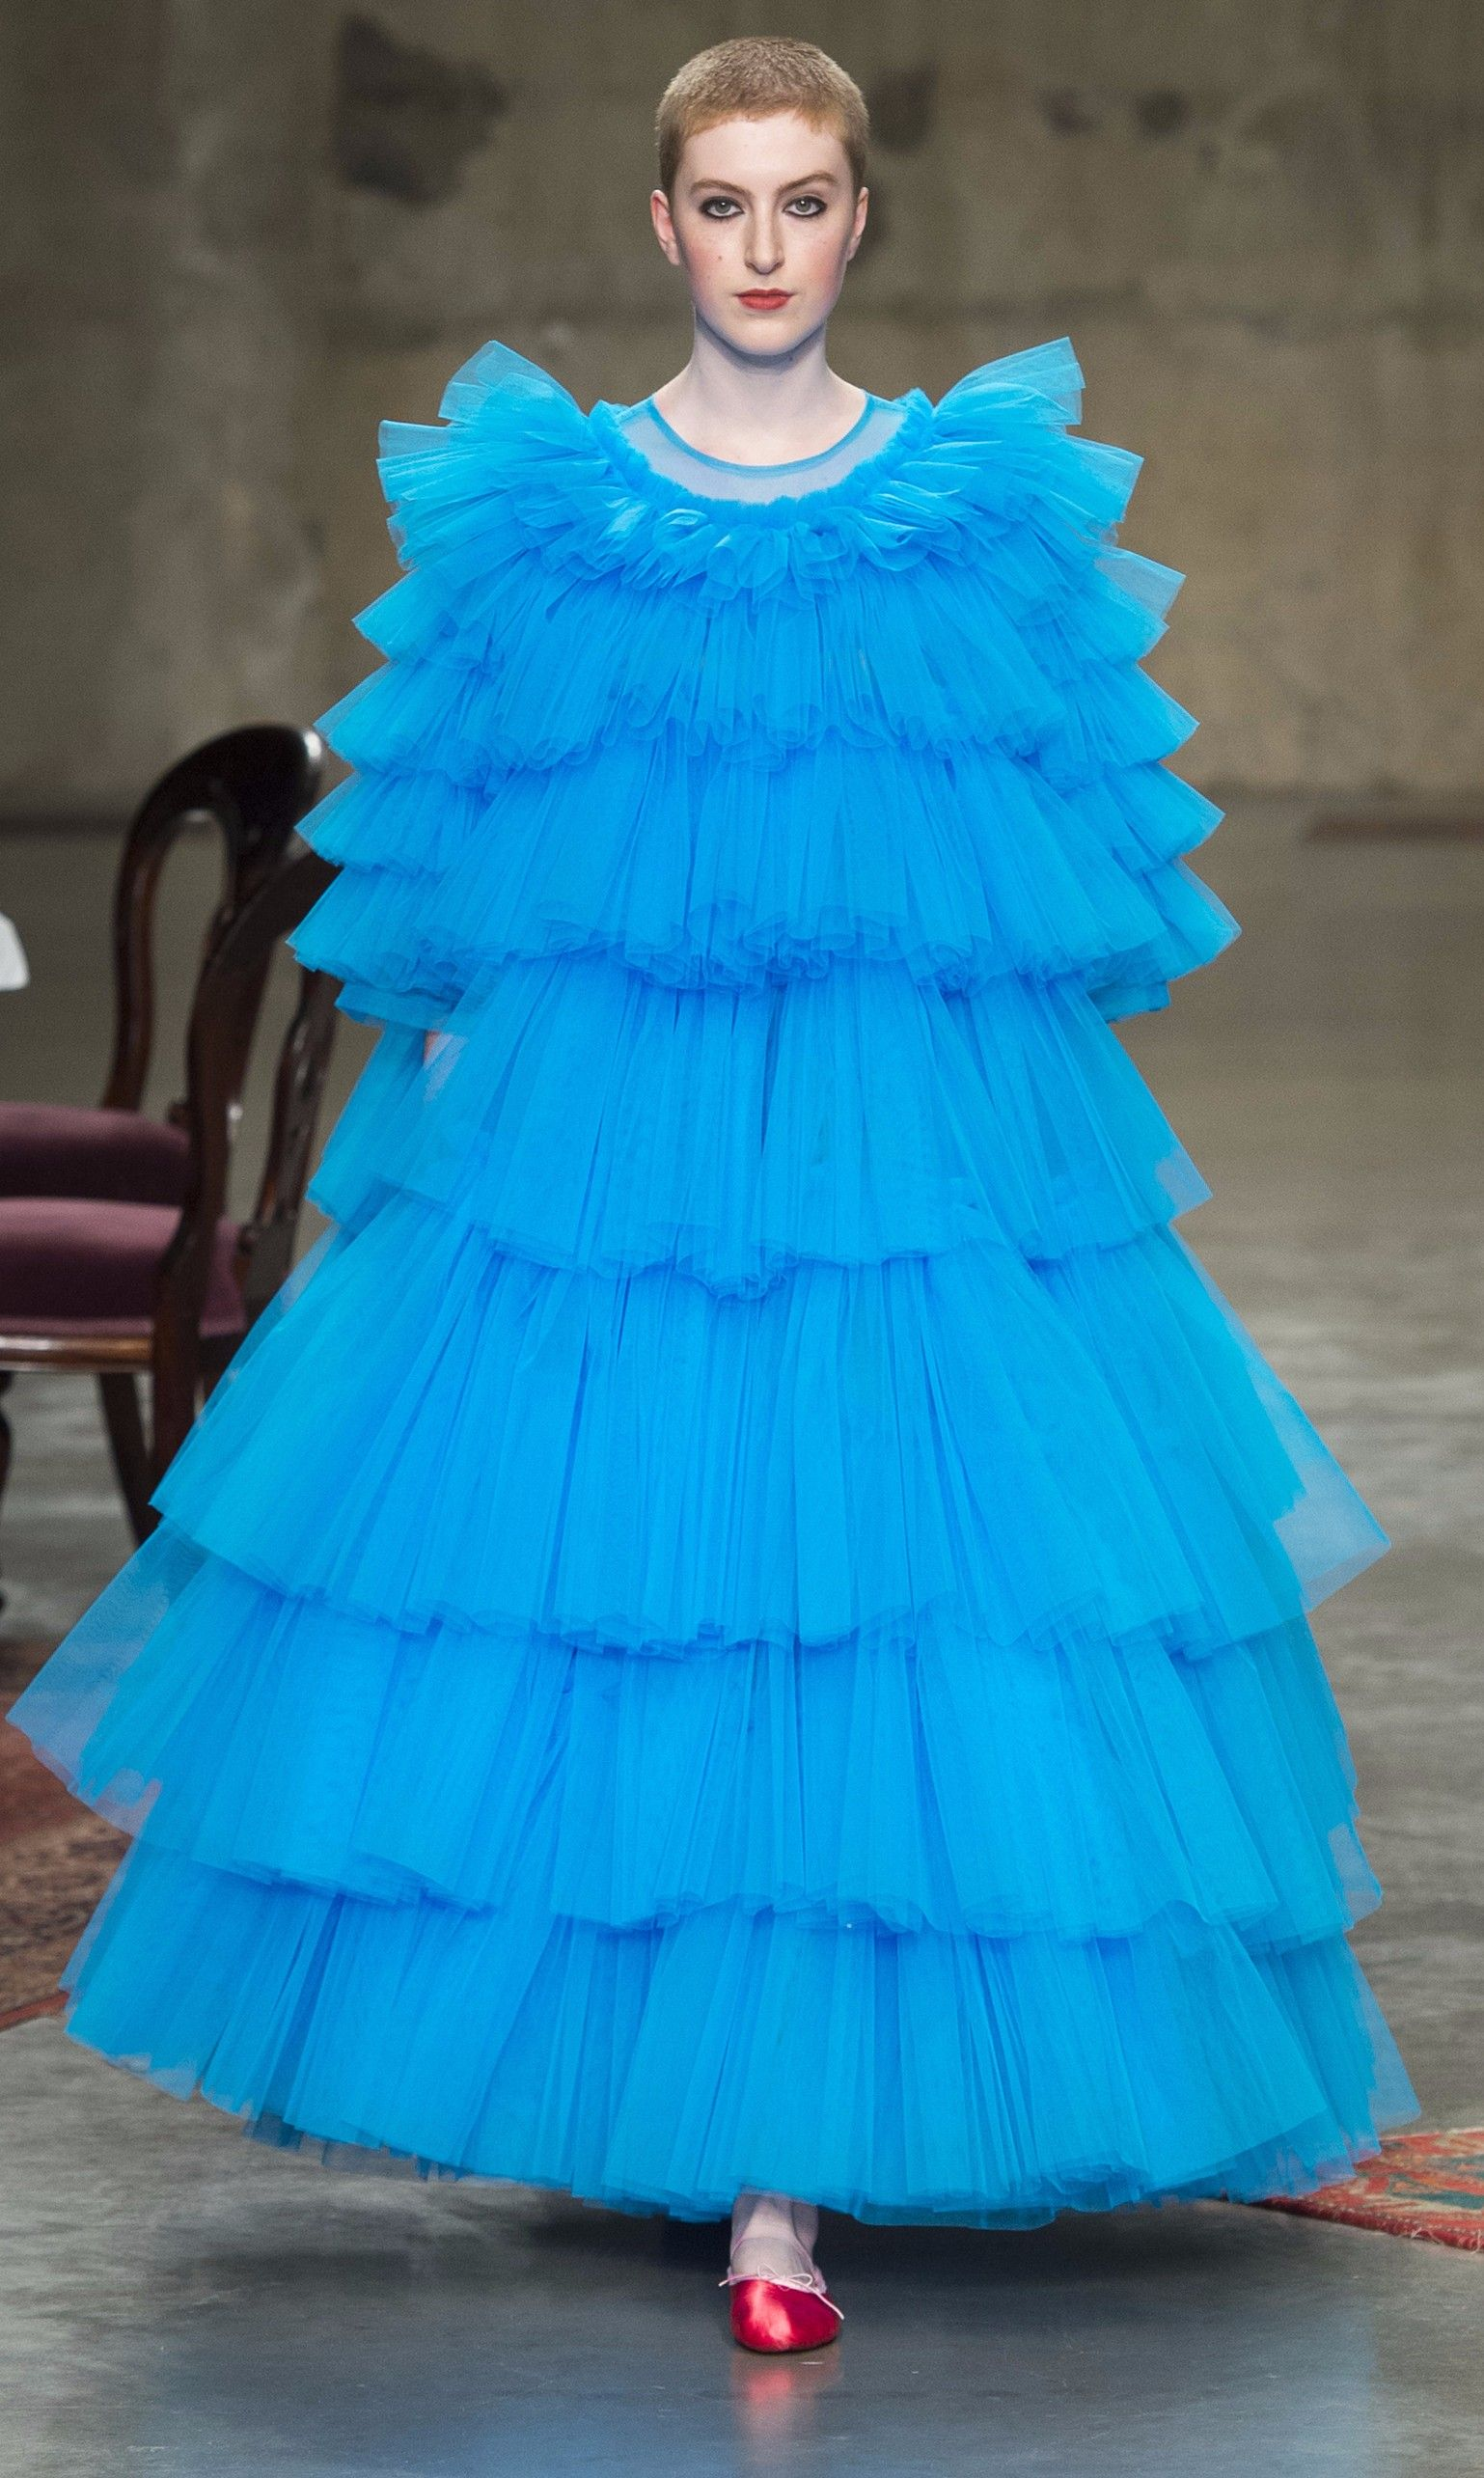 Everyone's Invited to Molly Goddard's Tulle Tea Party